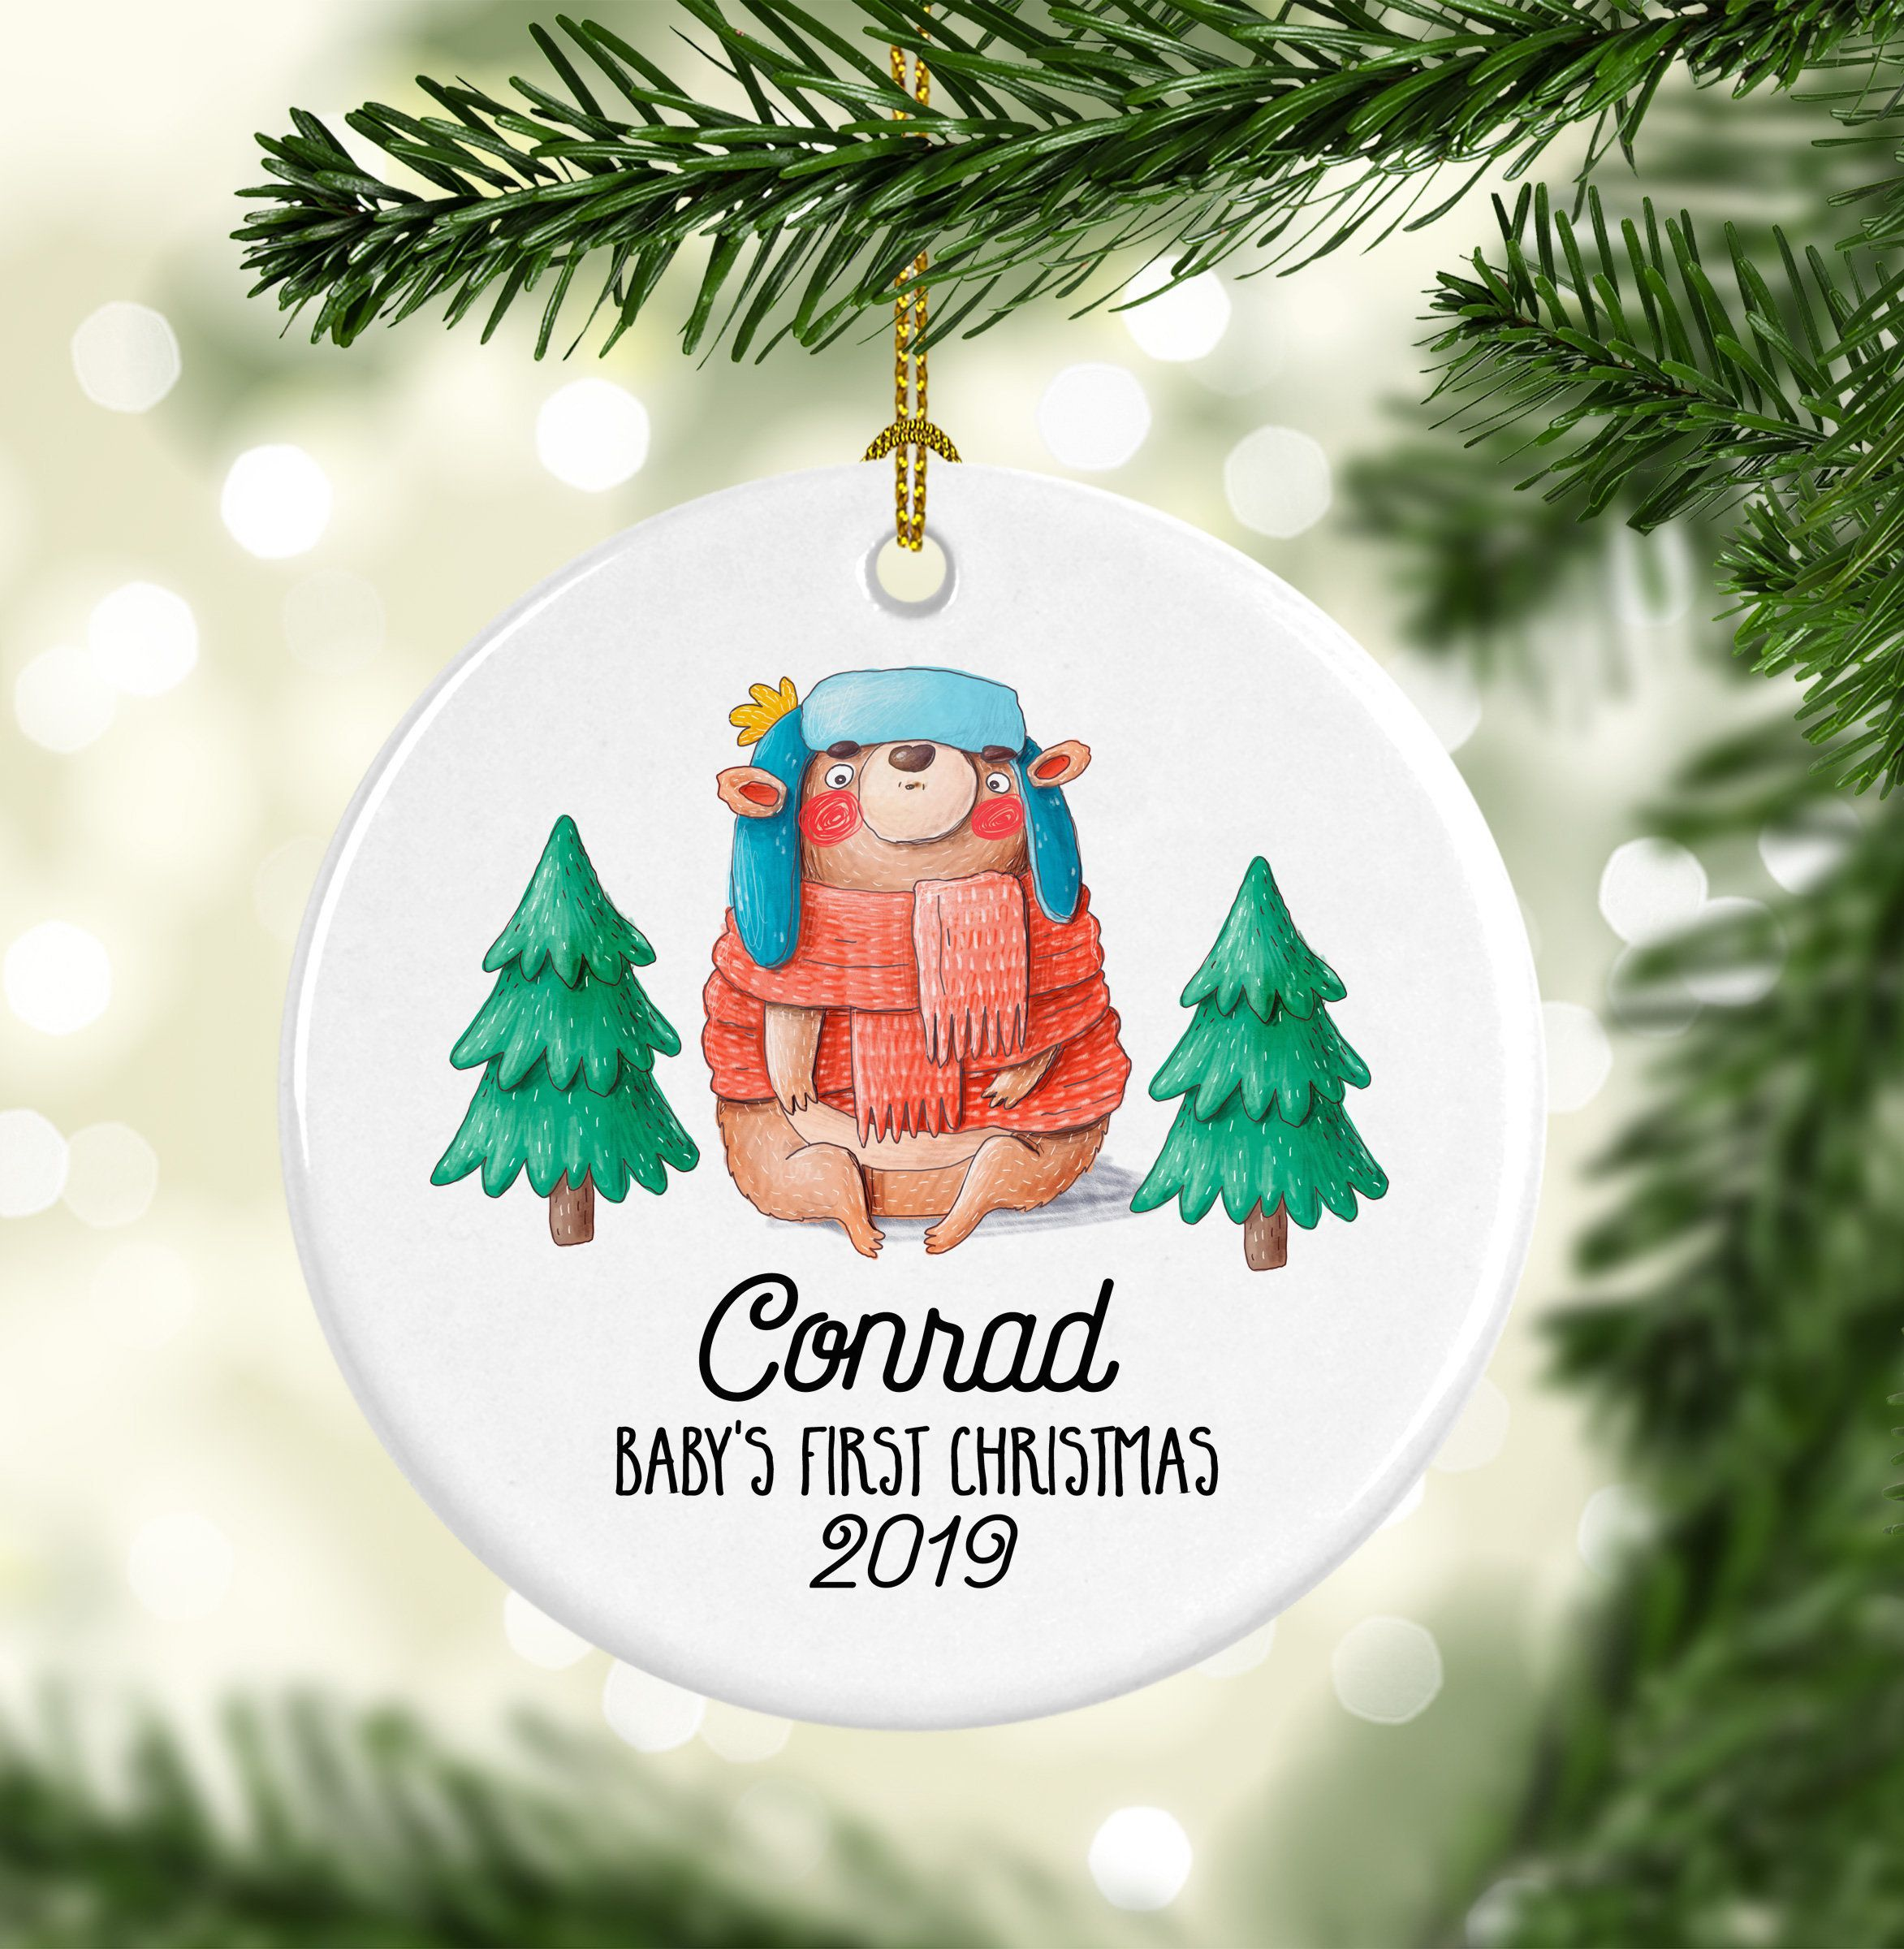 Baby Boy Gift Baby Ornament Personalized Christmas Babies First Christmas Baby/'s 1st Christmas Baby/'s First Christmas Ornament